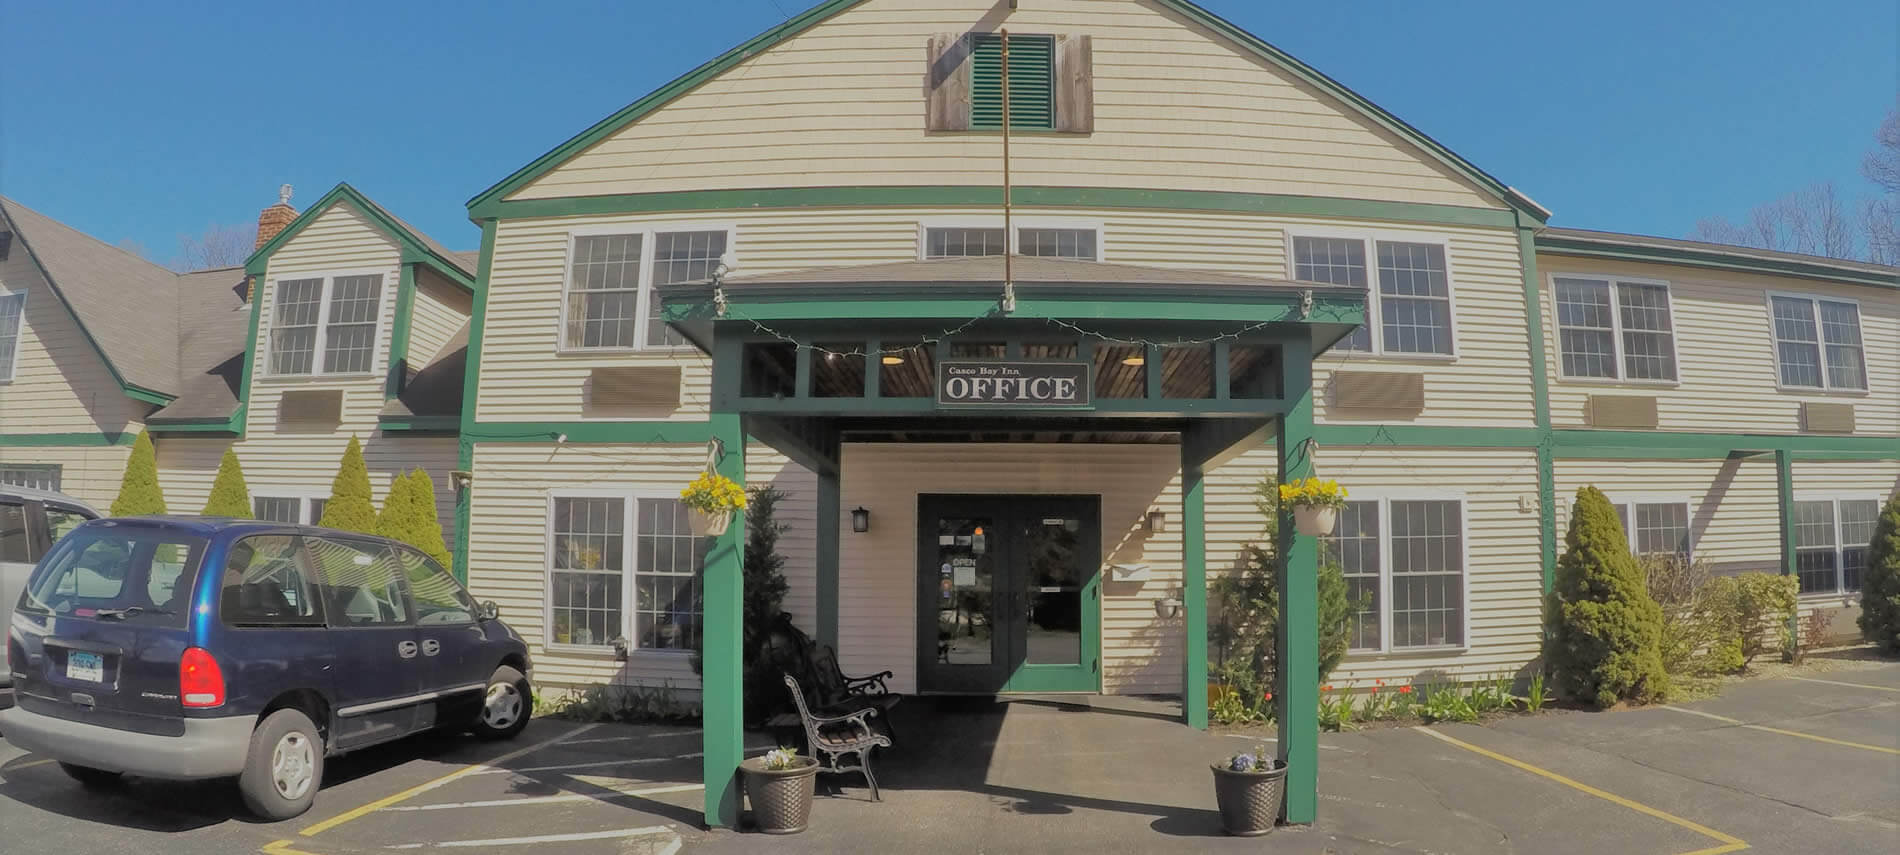 Two story tan building with green trim, gable room, green painted portico, double glass doors and an OFFICE sign